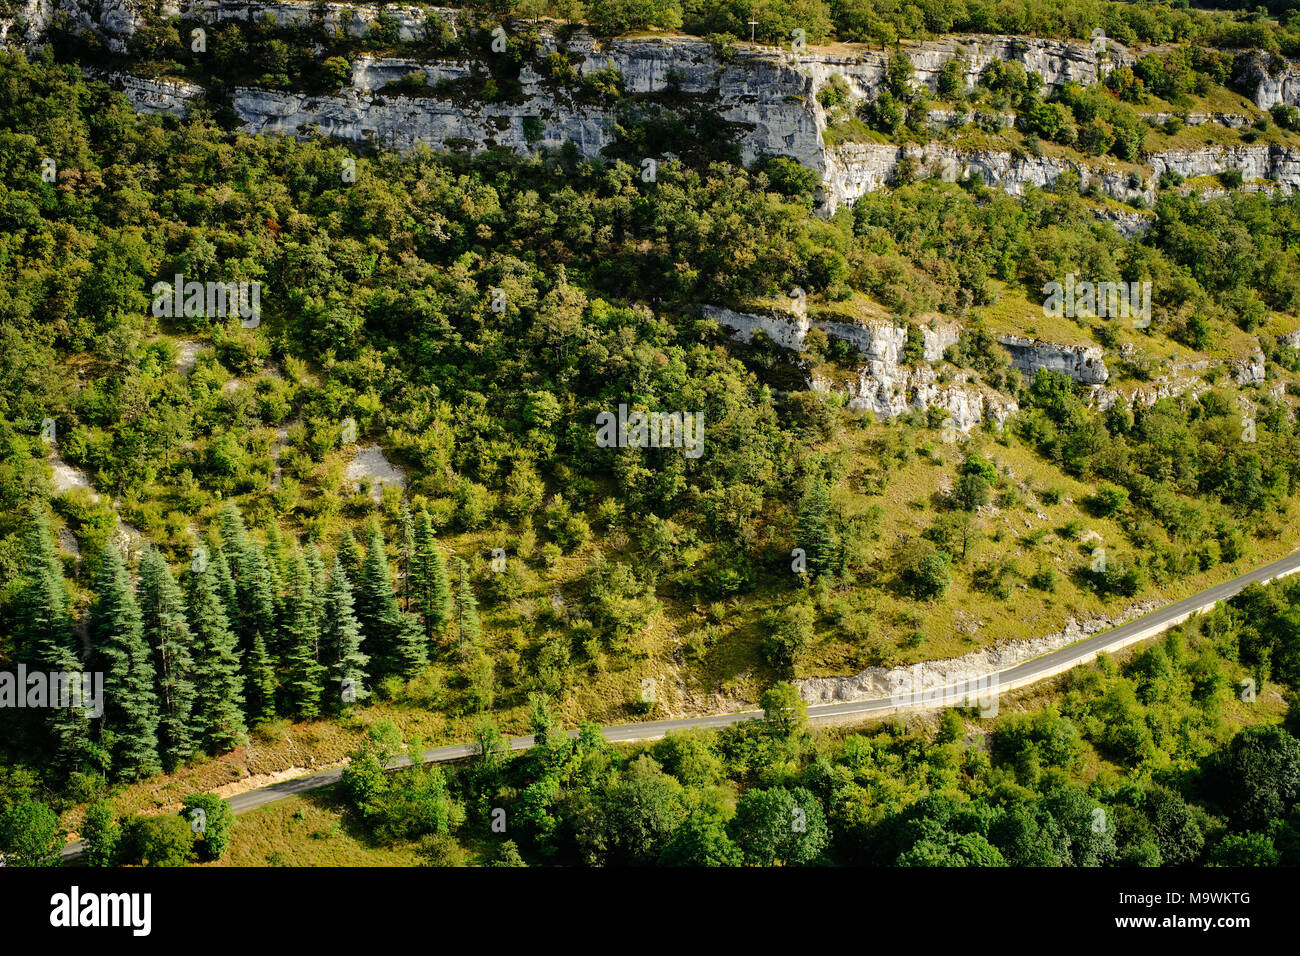 A road cuts through the limestone landscape of the Lot region in south west France. - Stock Image